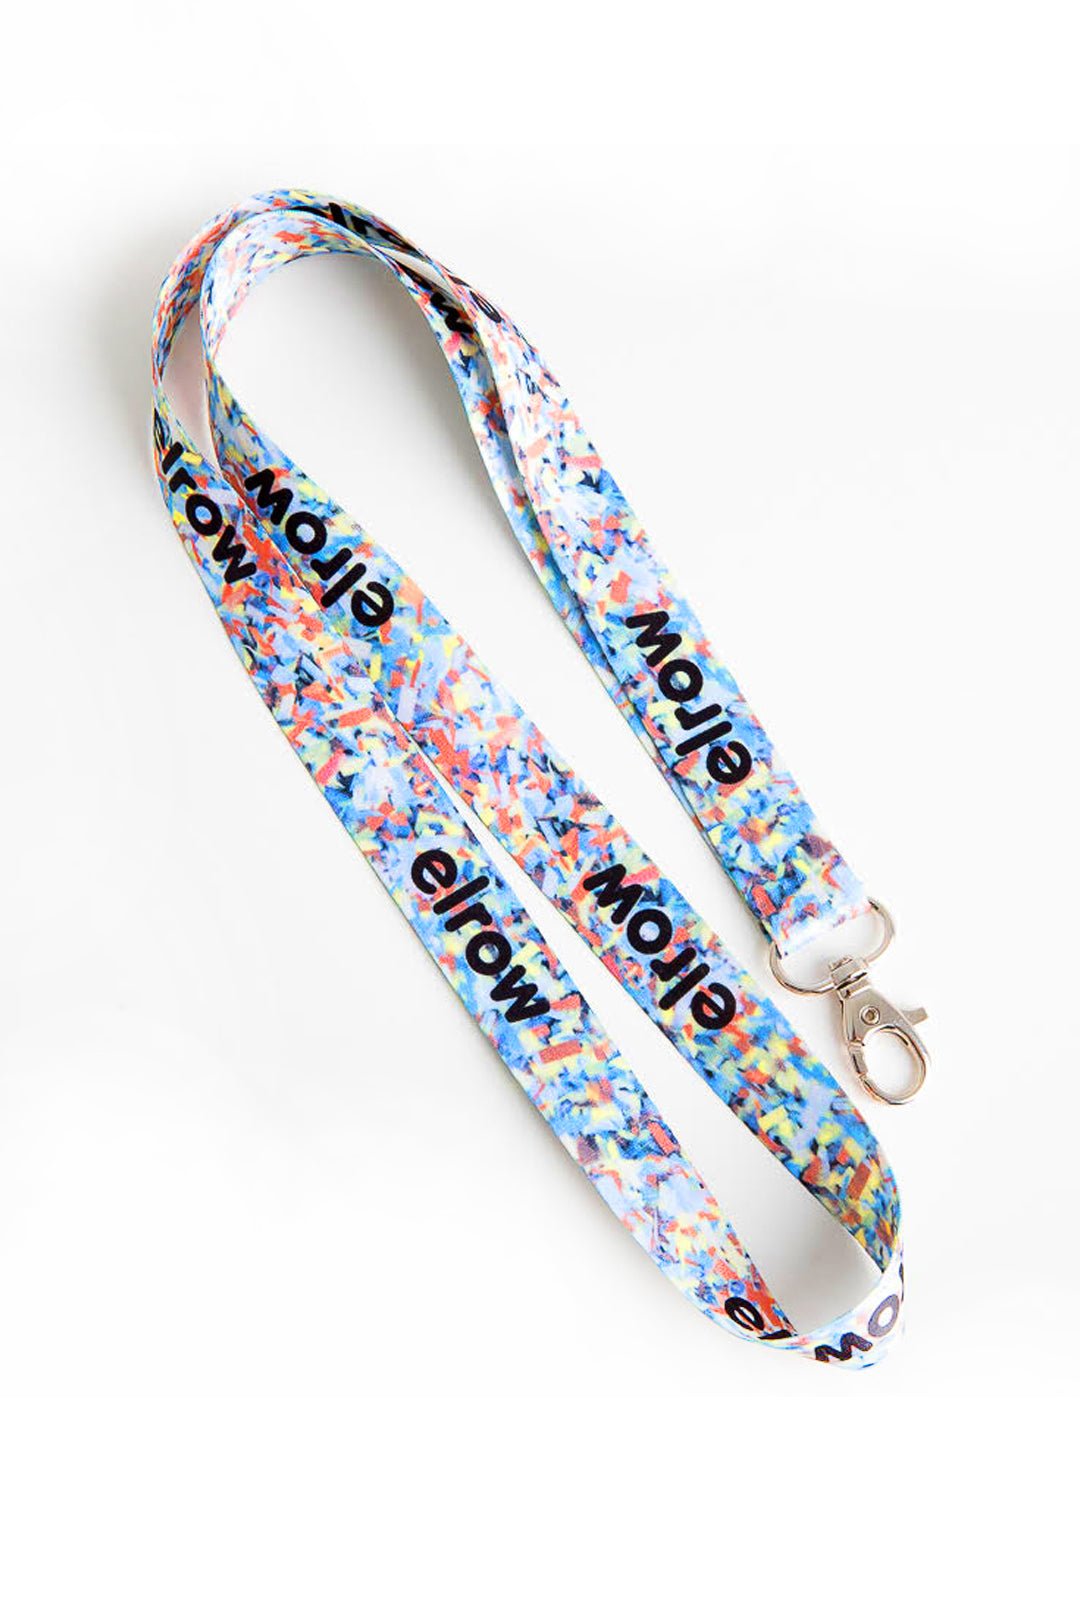 We are dreamers lanyard